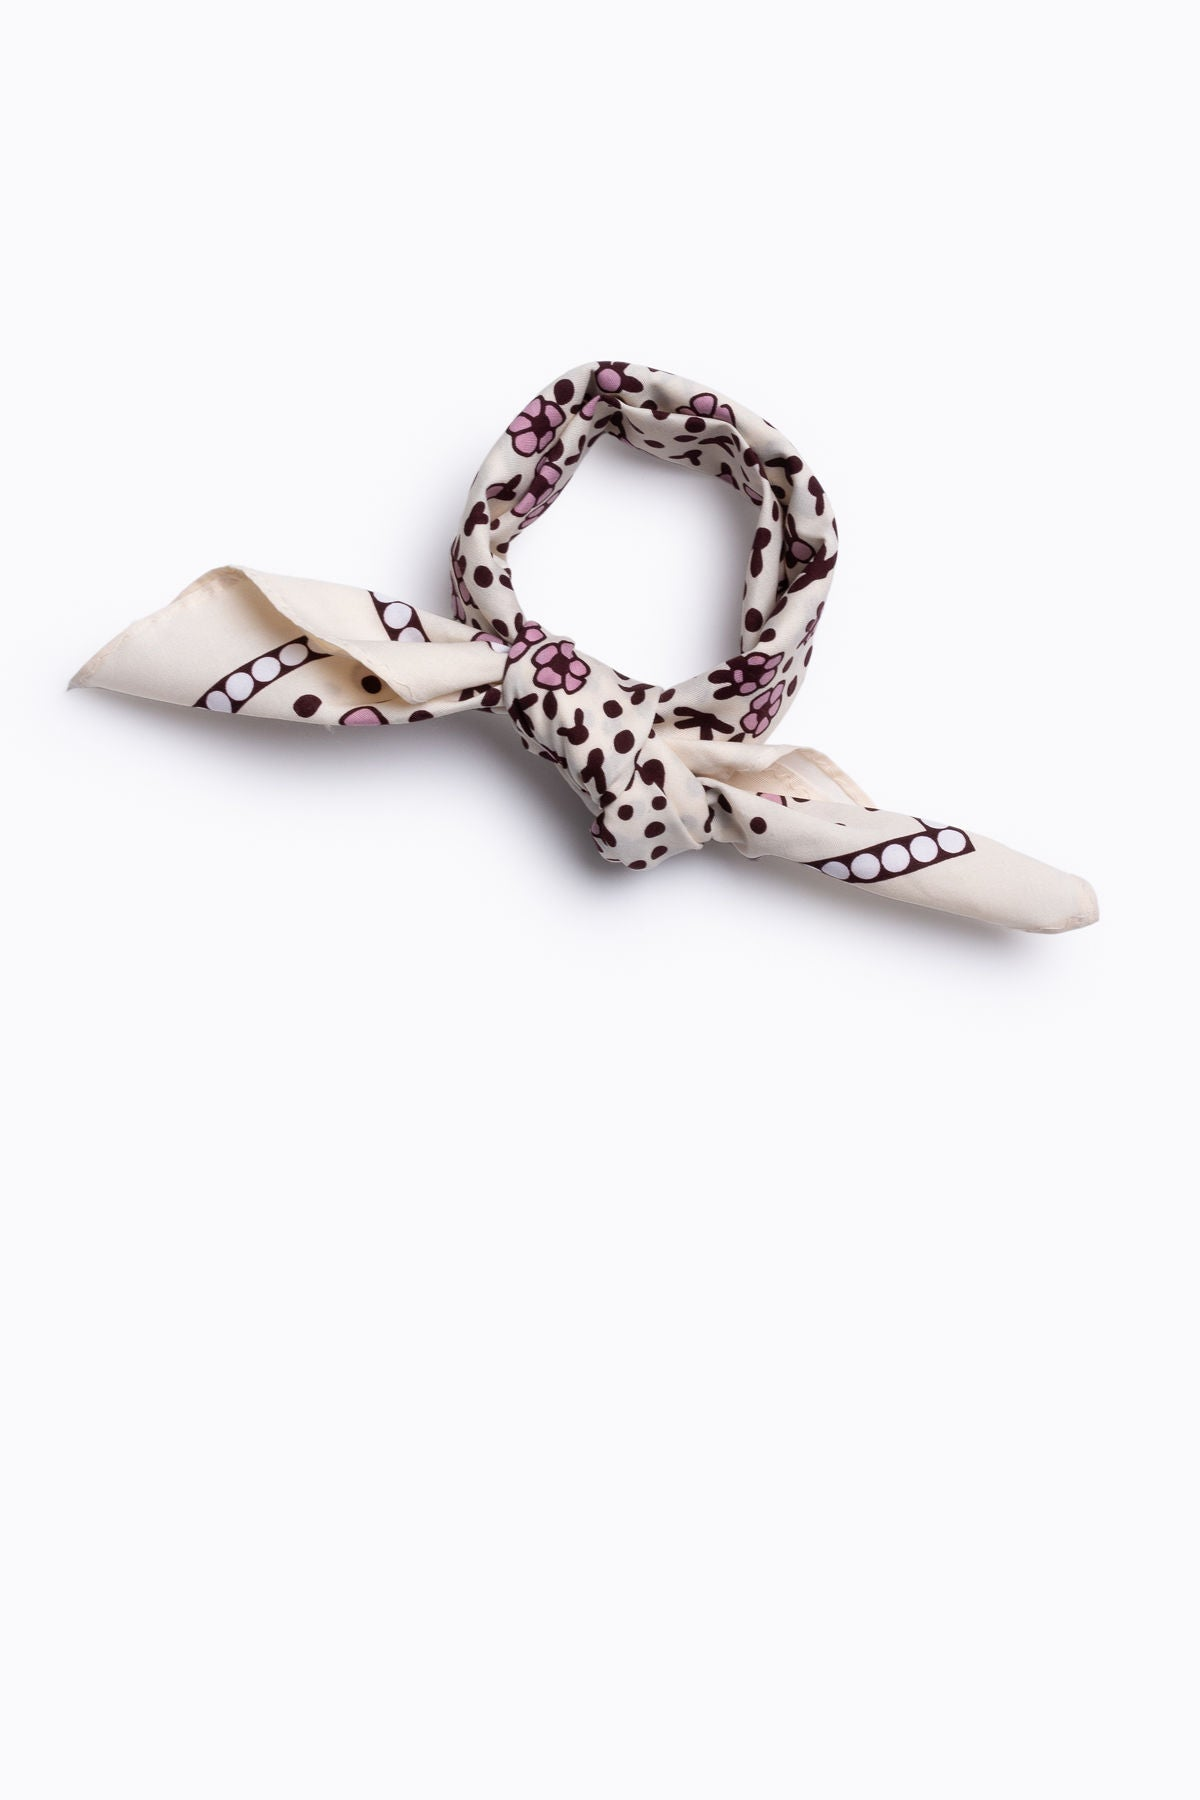 Piper & Scoot: Cotton Neck Scarf in Blush Floral